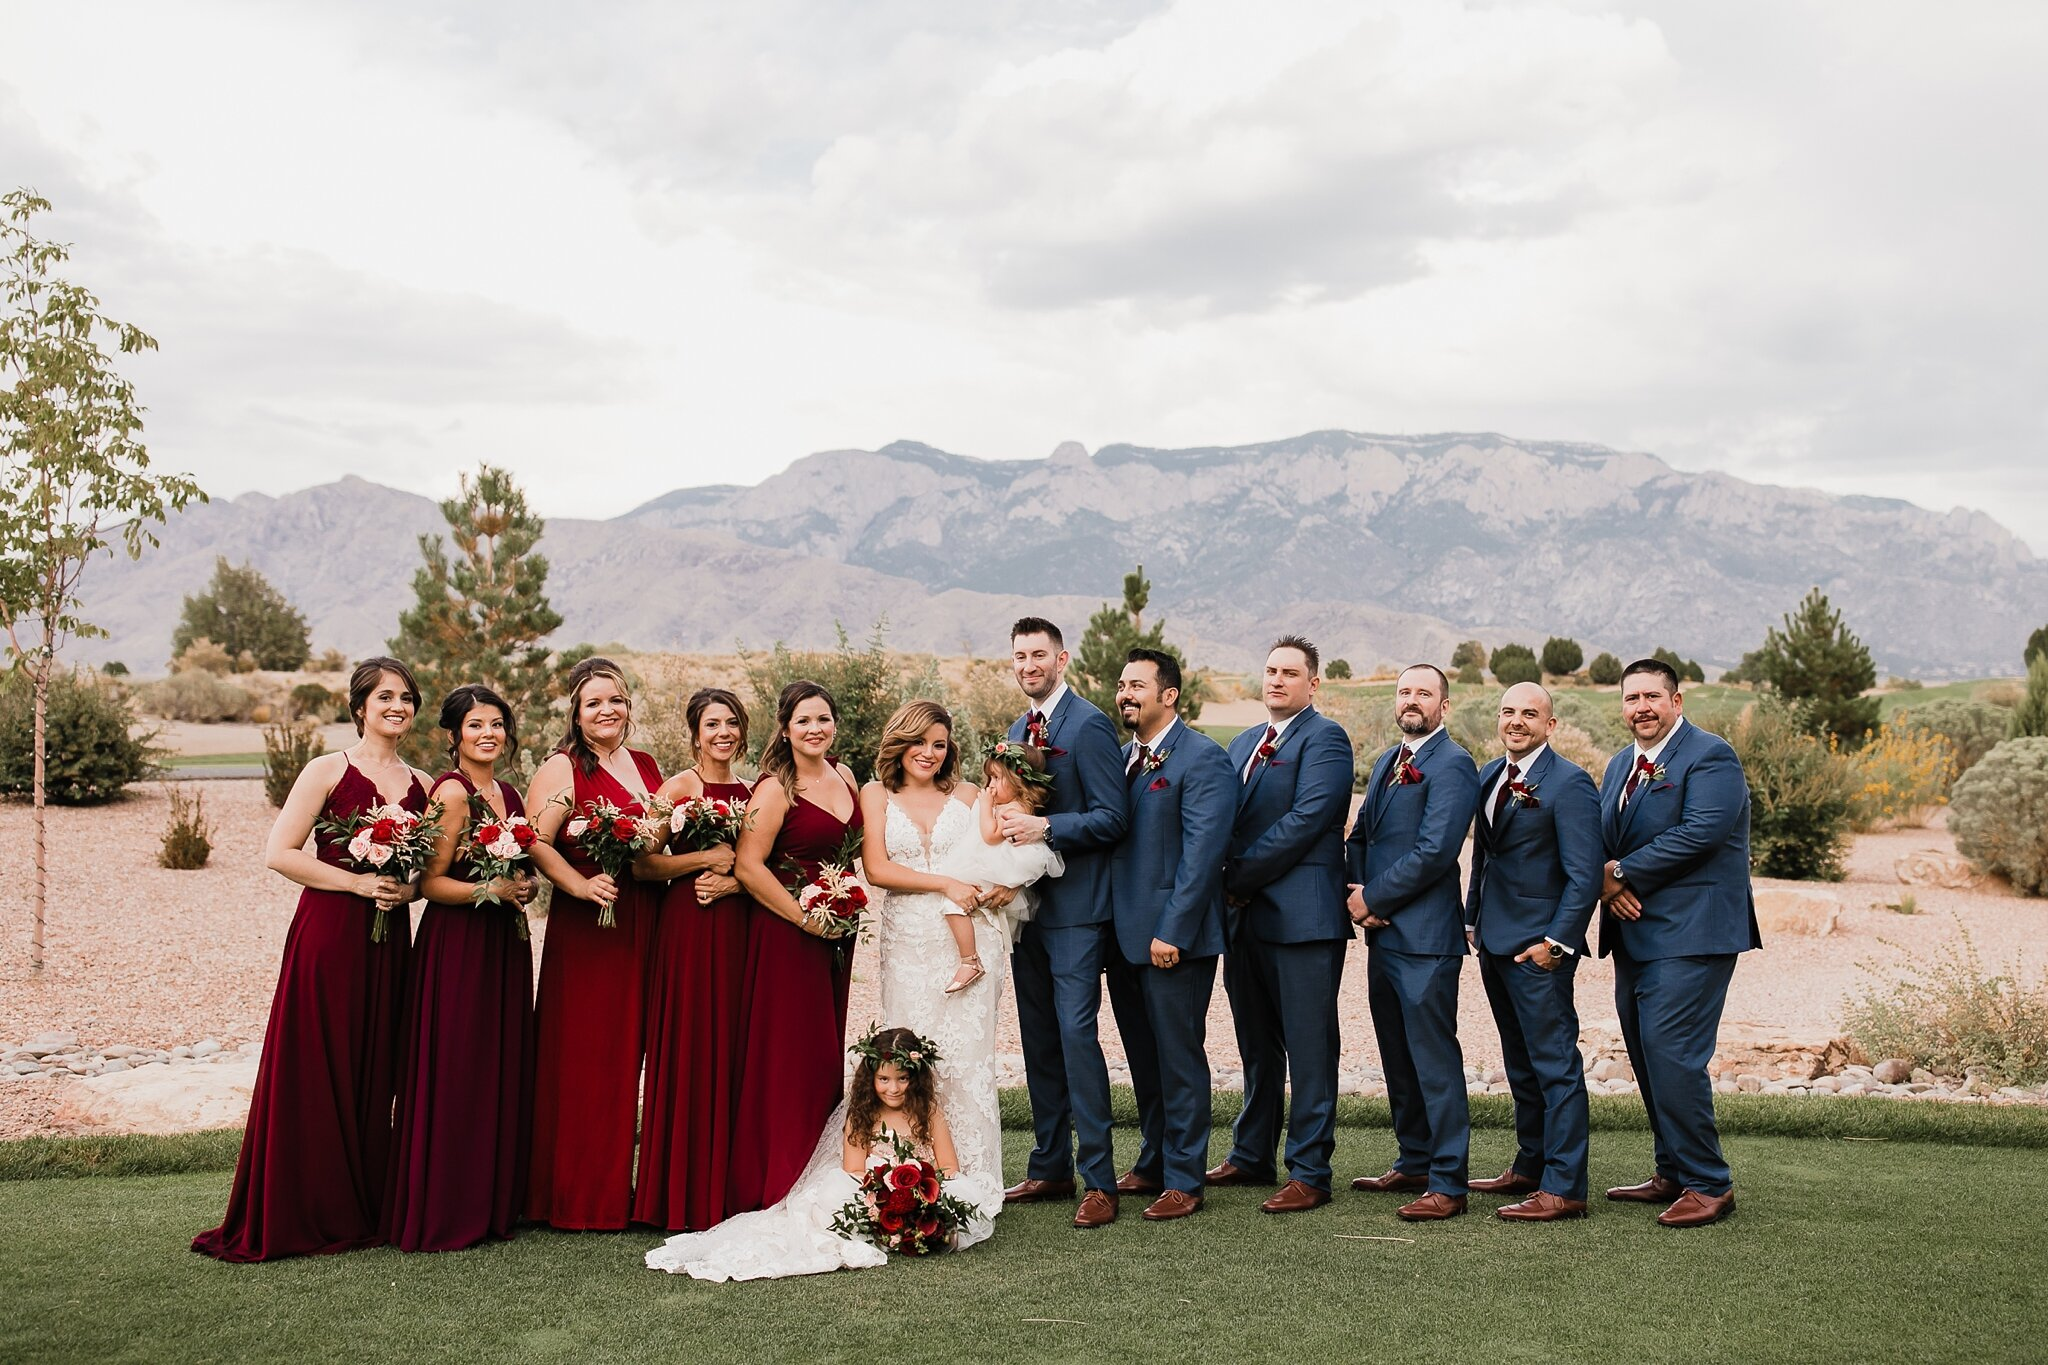 Alicia+lucia+photography+-+albuquerque+wedding+photographer+-+santa+fe+wedding+photography+-+new+mexico+wedding+photographer+-+new+mexico+wedding+-+albuquerque+wedding+-+sandia+wedding+-+sandia+event+center+wedding_0056.jpg